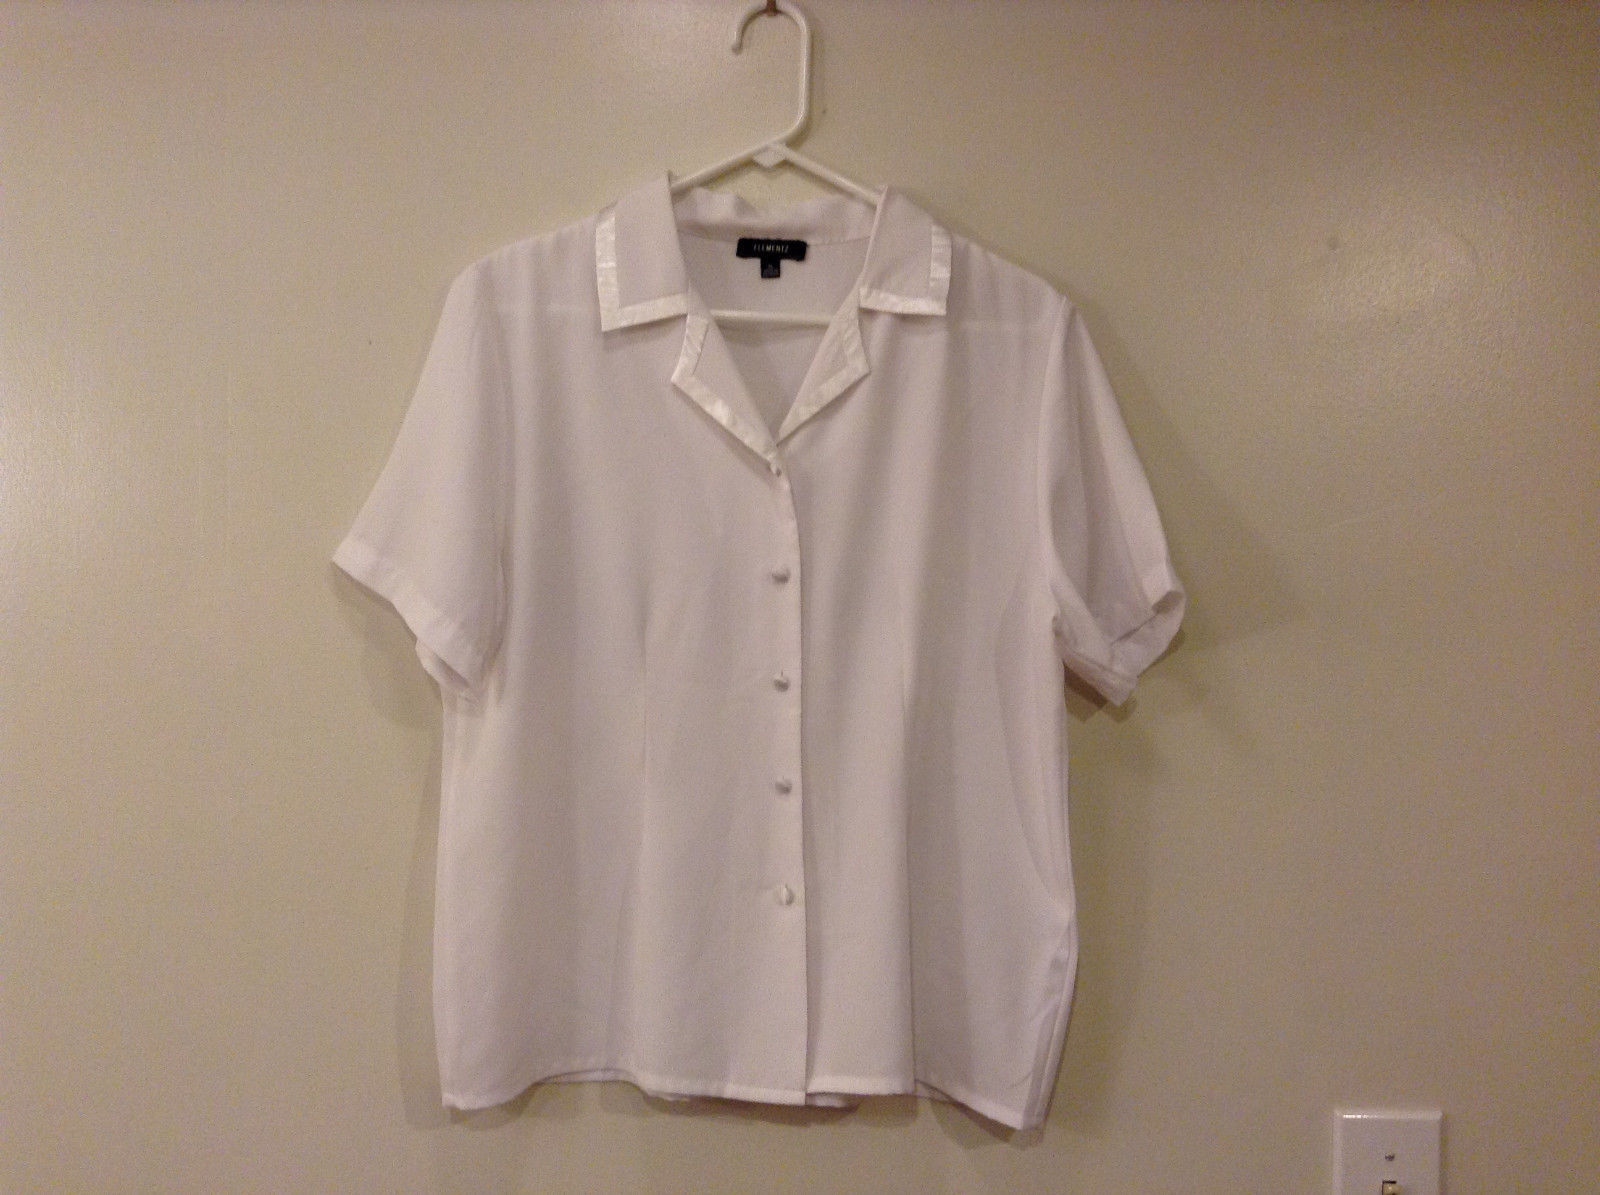 Womens Elementz White 100% polyester Short sleeve Blouse Shirt, size XL